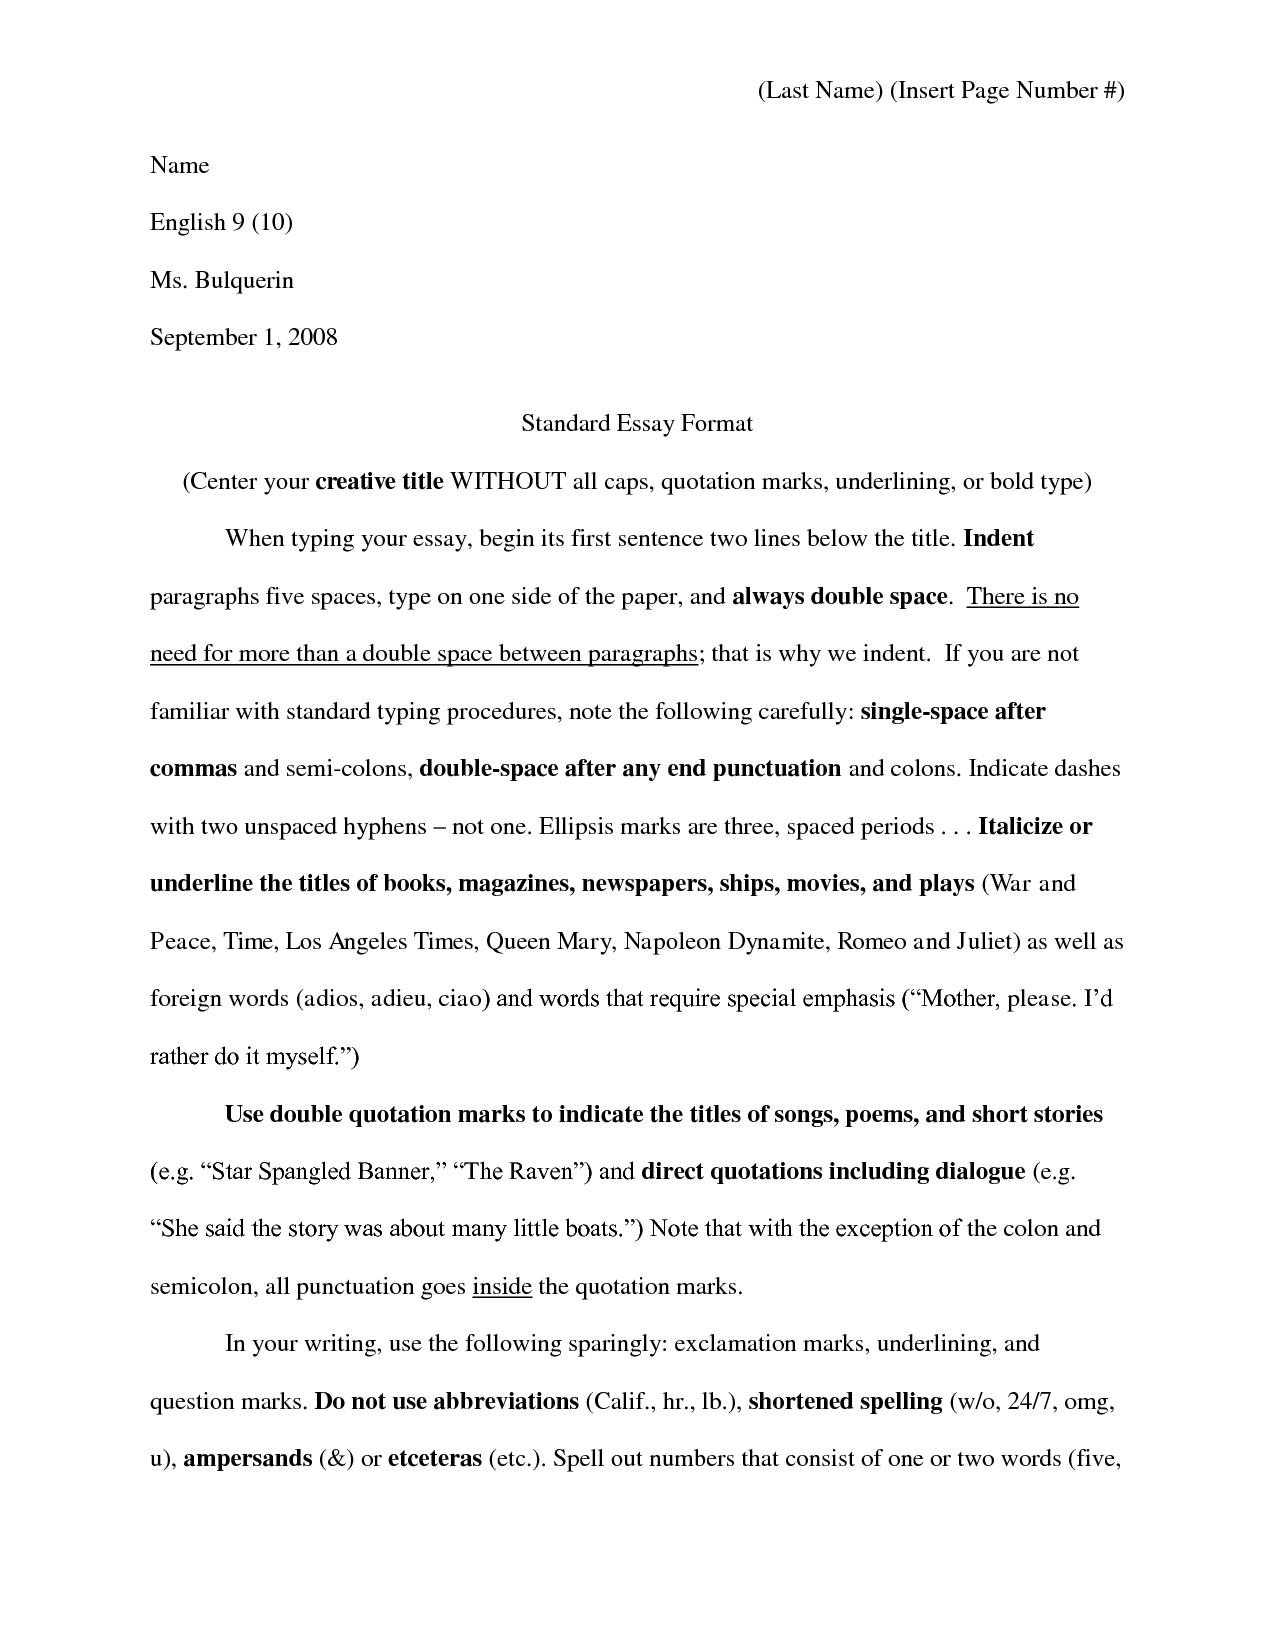 010 Proper Essay Heading Example For College Application Writing Awesome Mla Full